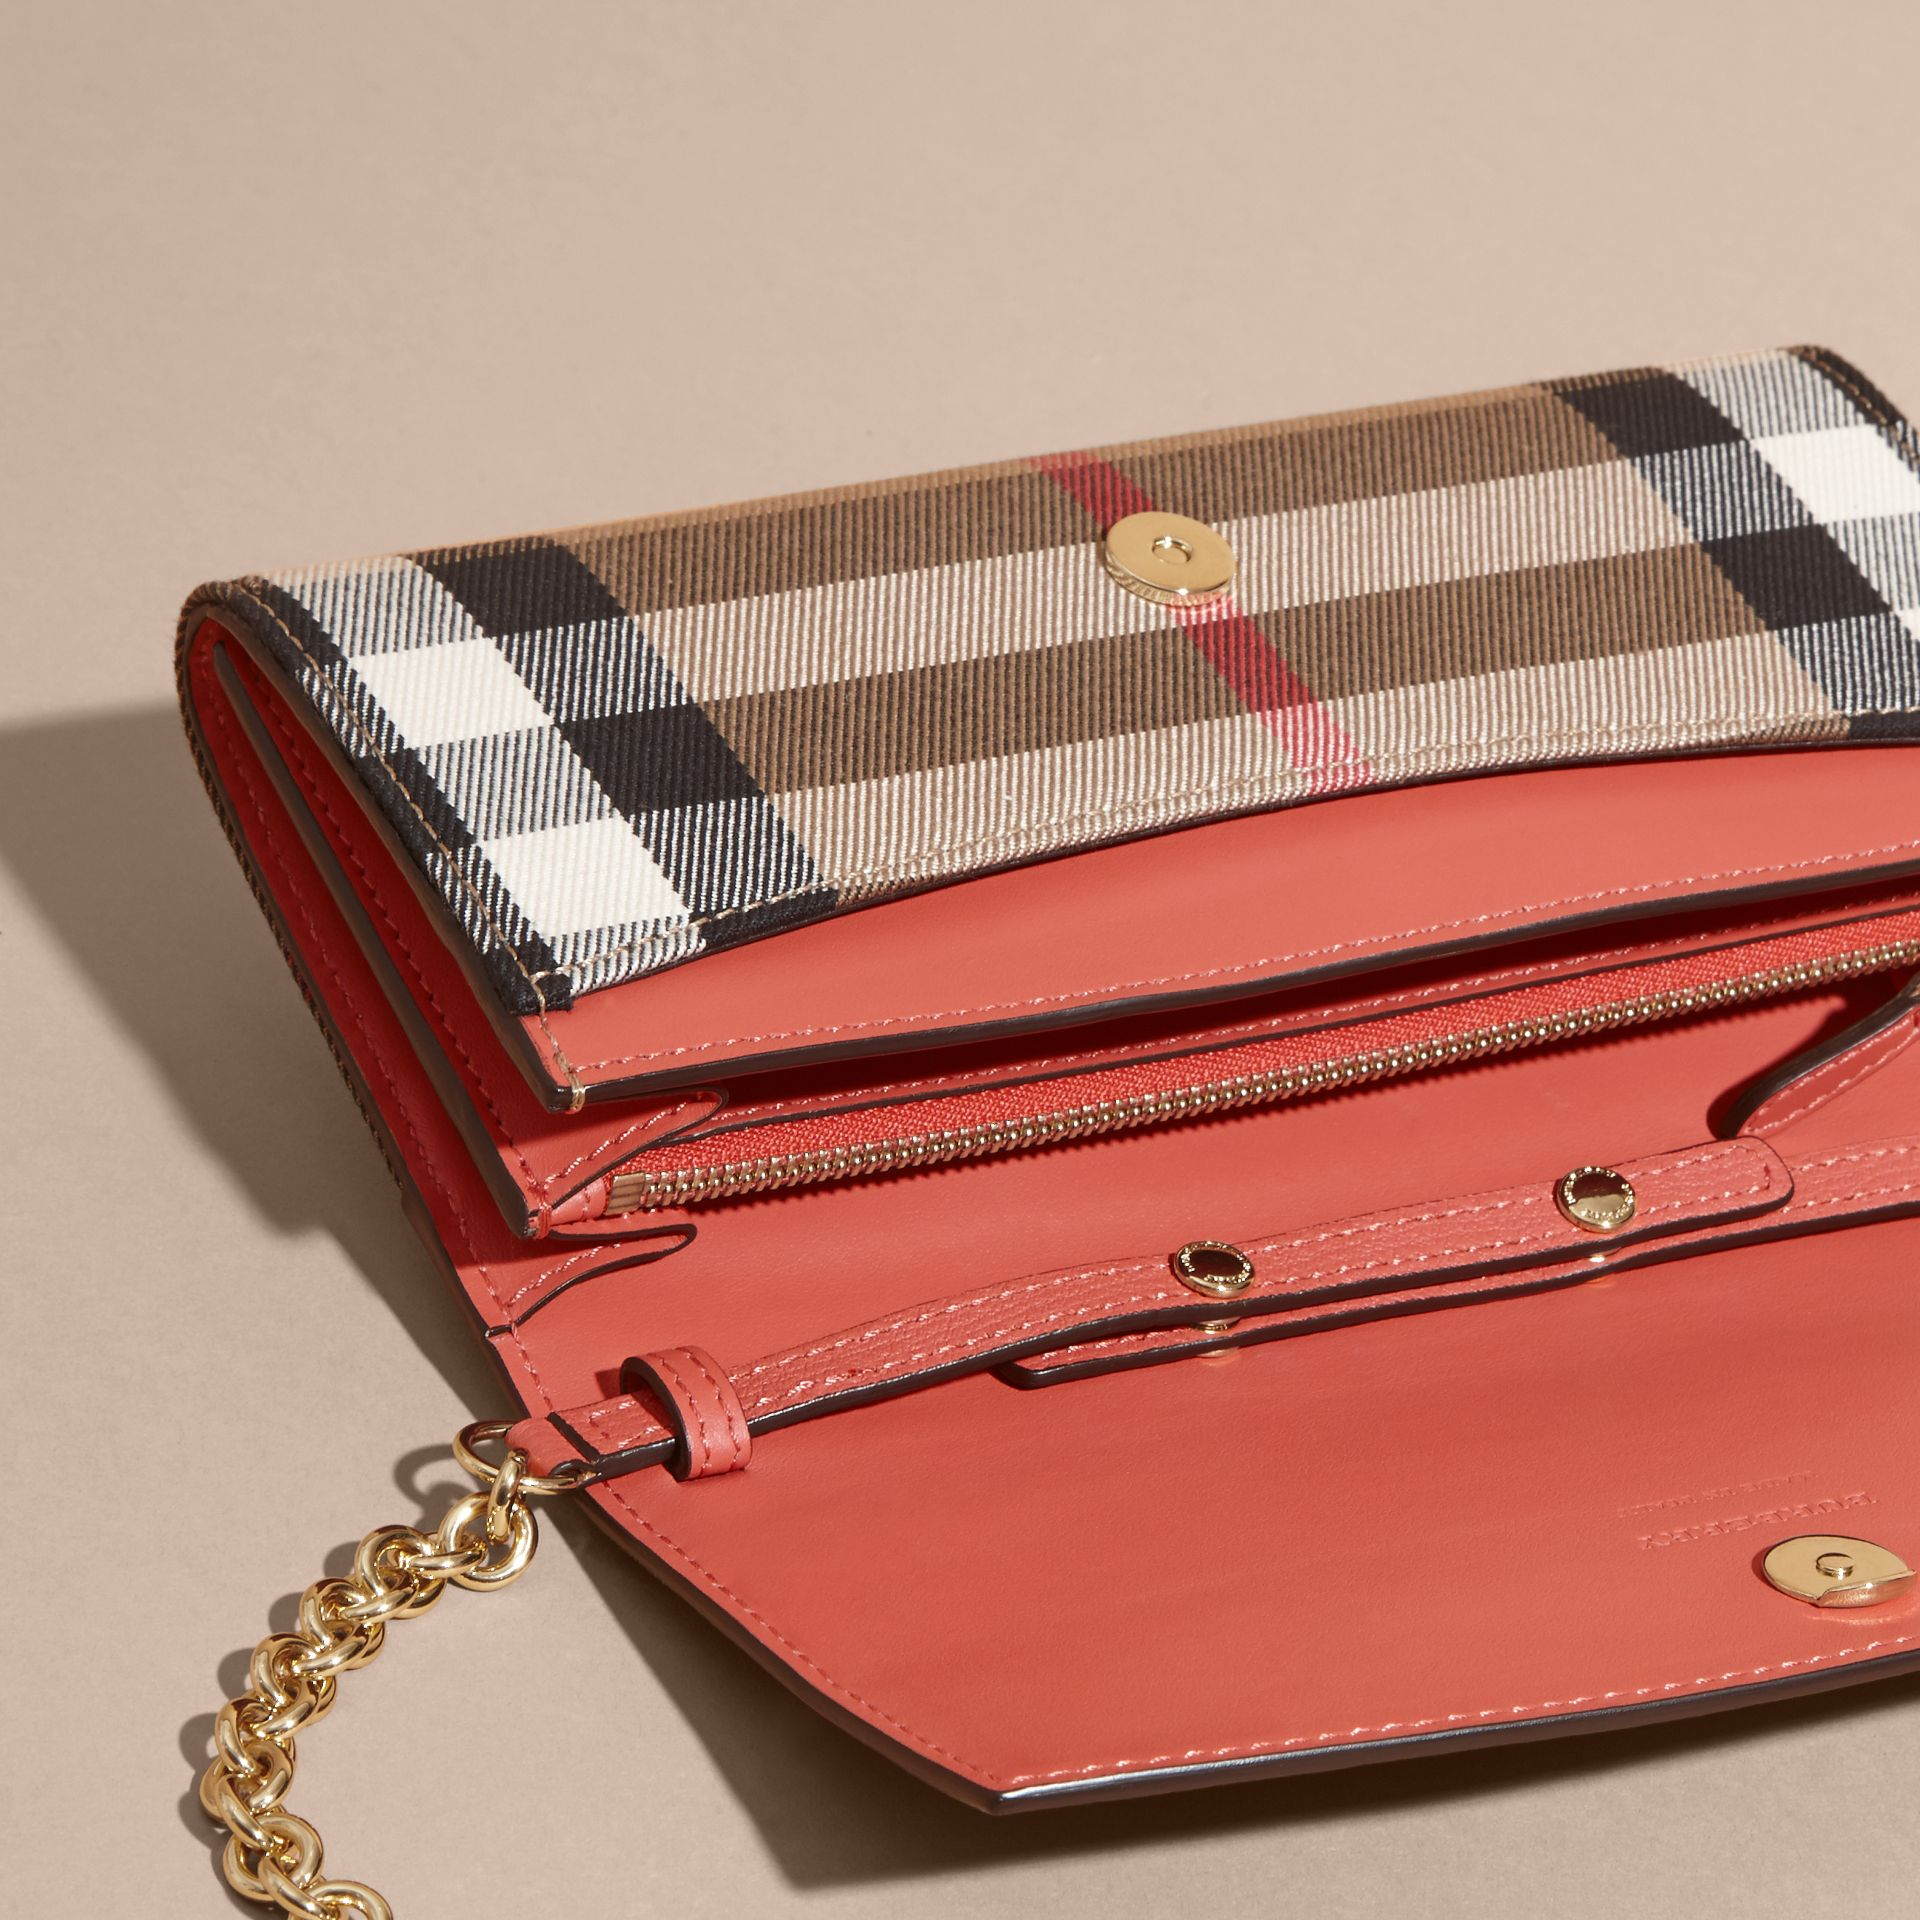 House Check and Leather Wallet with Chain in Cinnamon Red - Women | Burberry Canada - gallery image 5